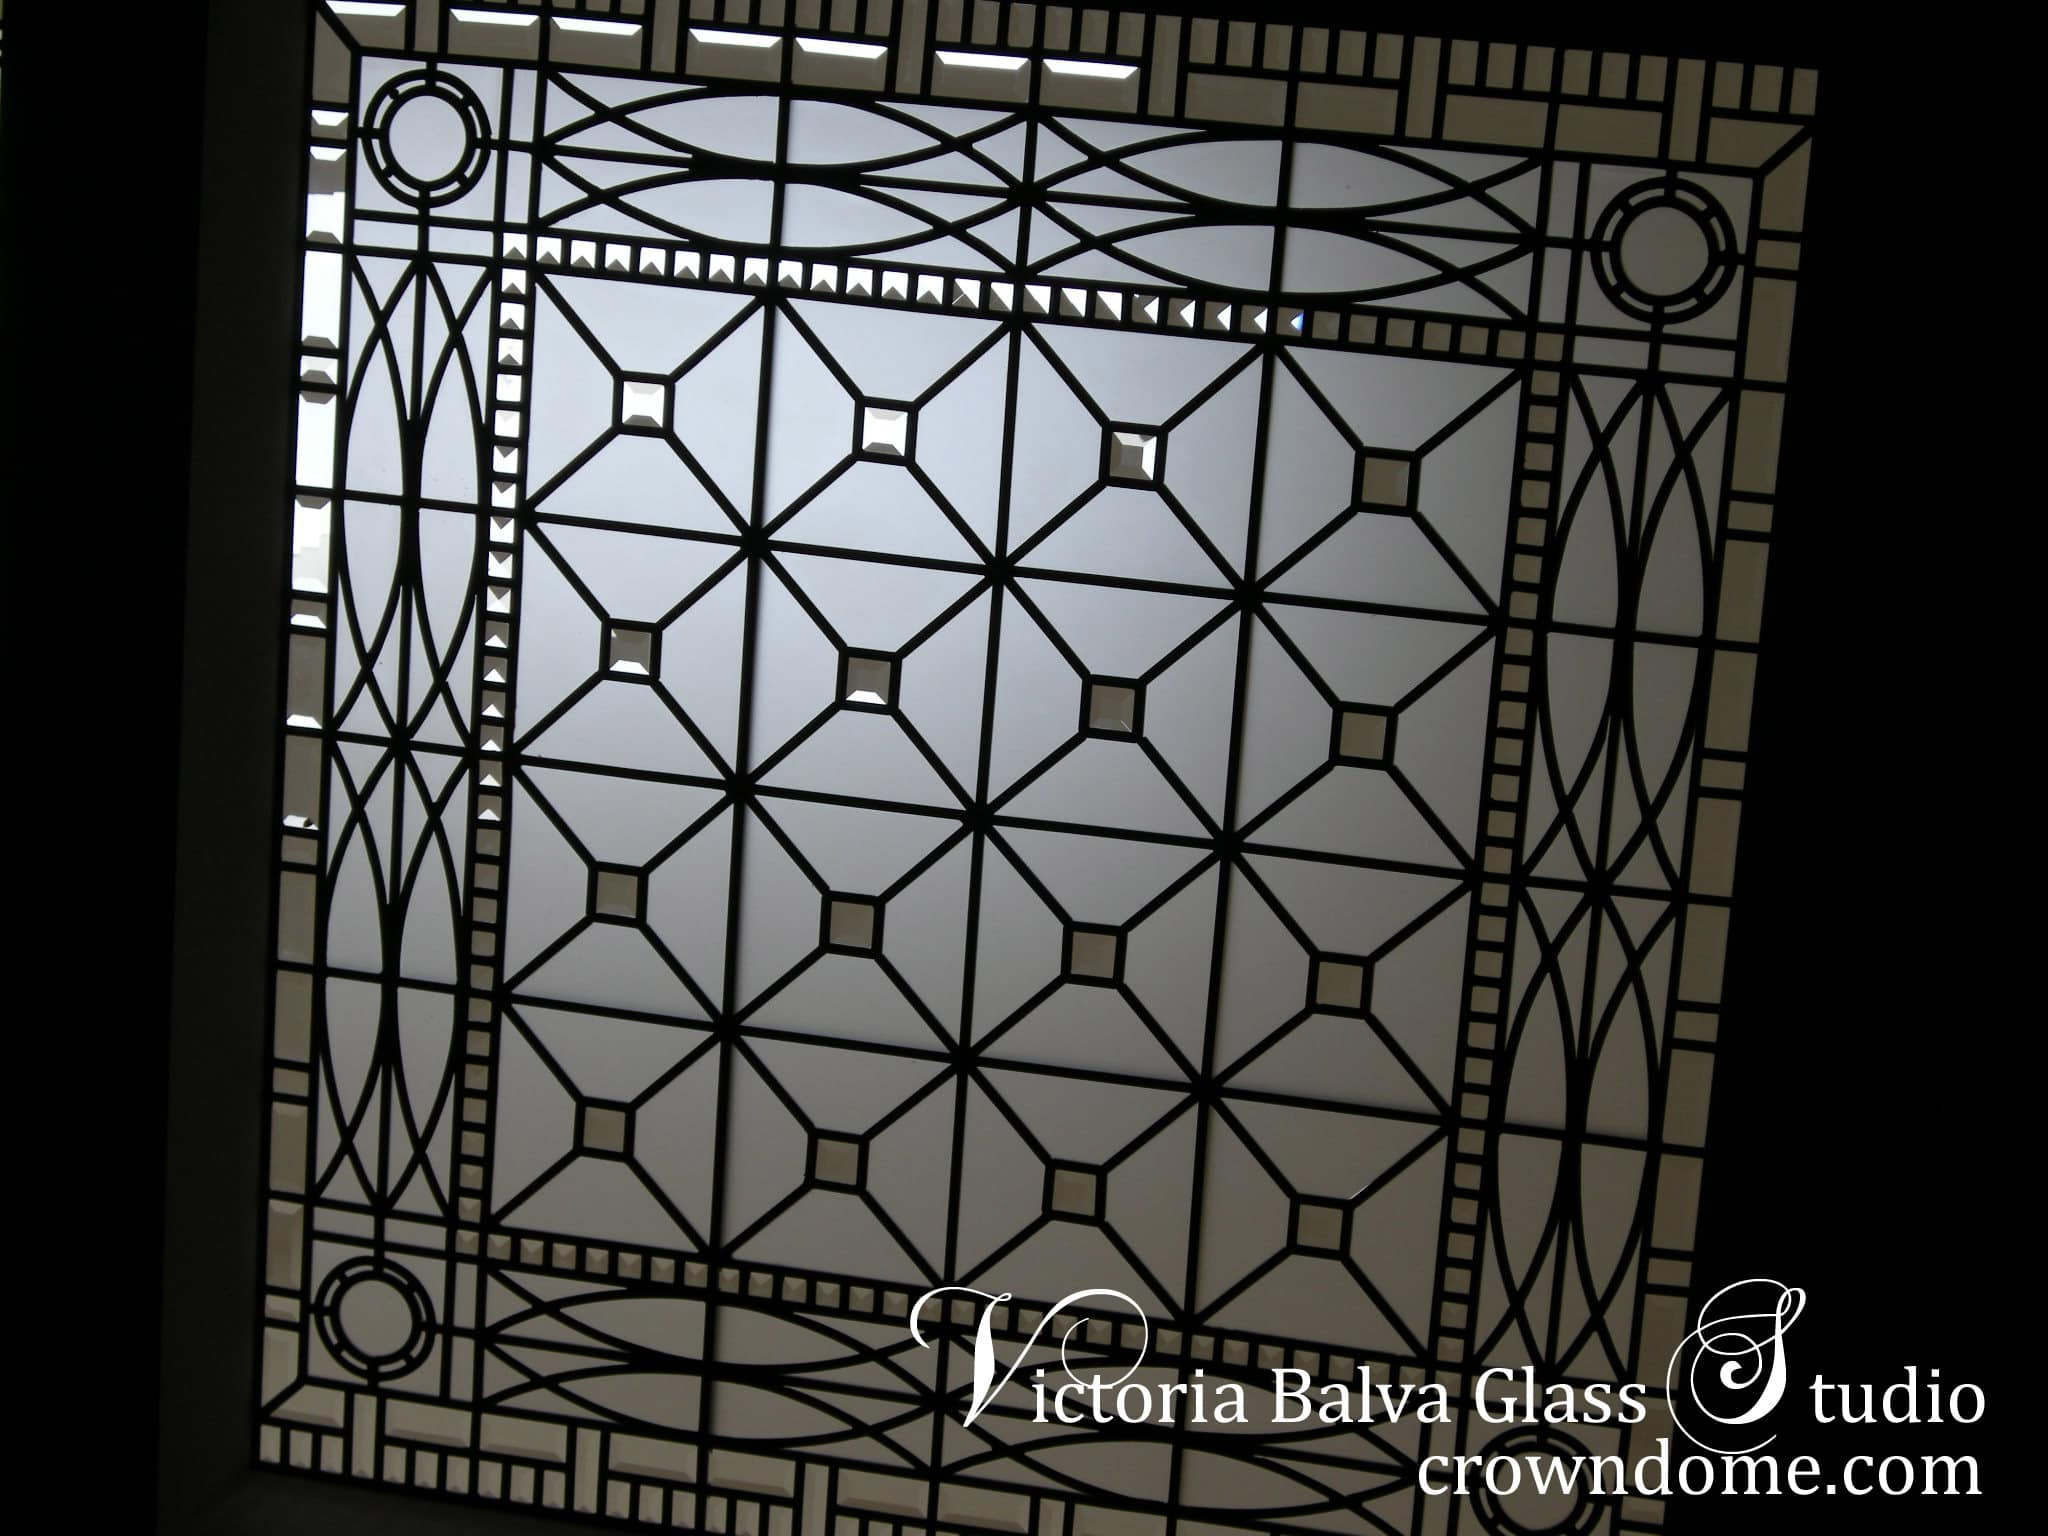 Triple beveled leaded glass skylight ceiling Hogg's Hollow for a custom built residence in Toronto. Silk and velvet in acid etched glass and clear beveled glass. Leaded glass ceiling skylight design by glass artist Victoria Balva